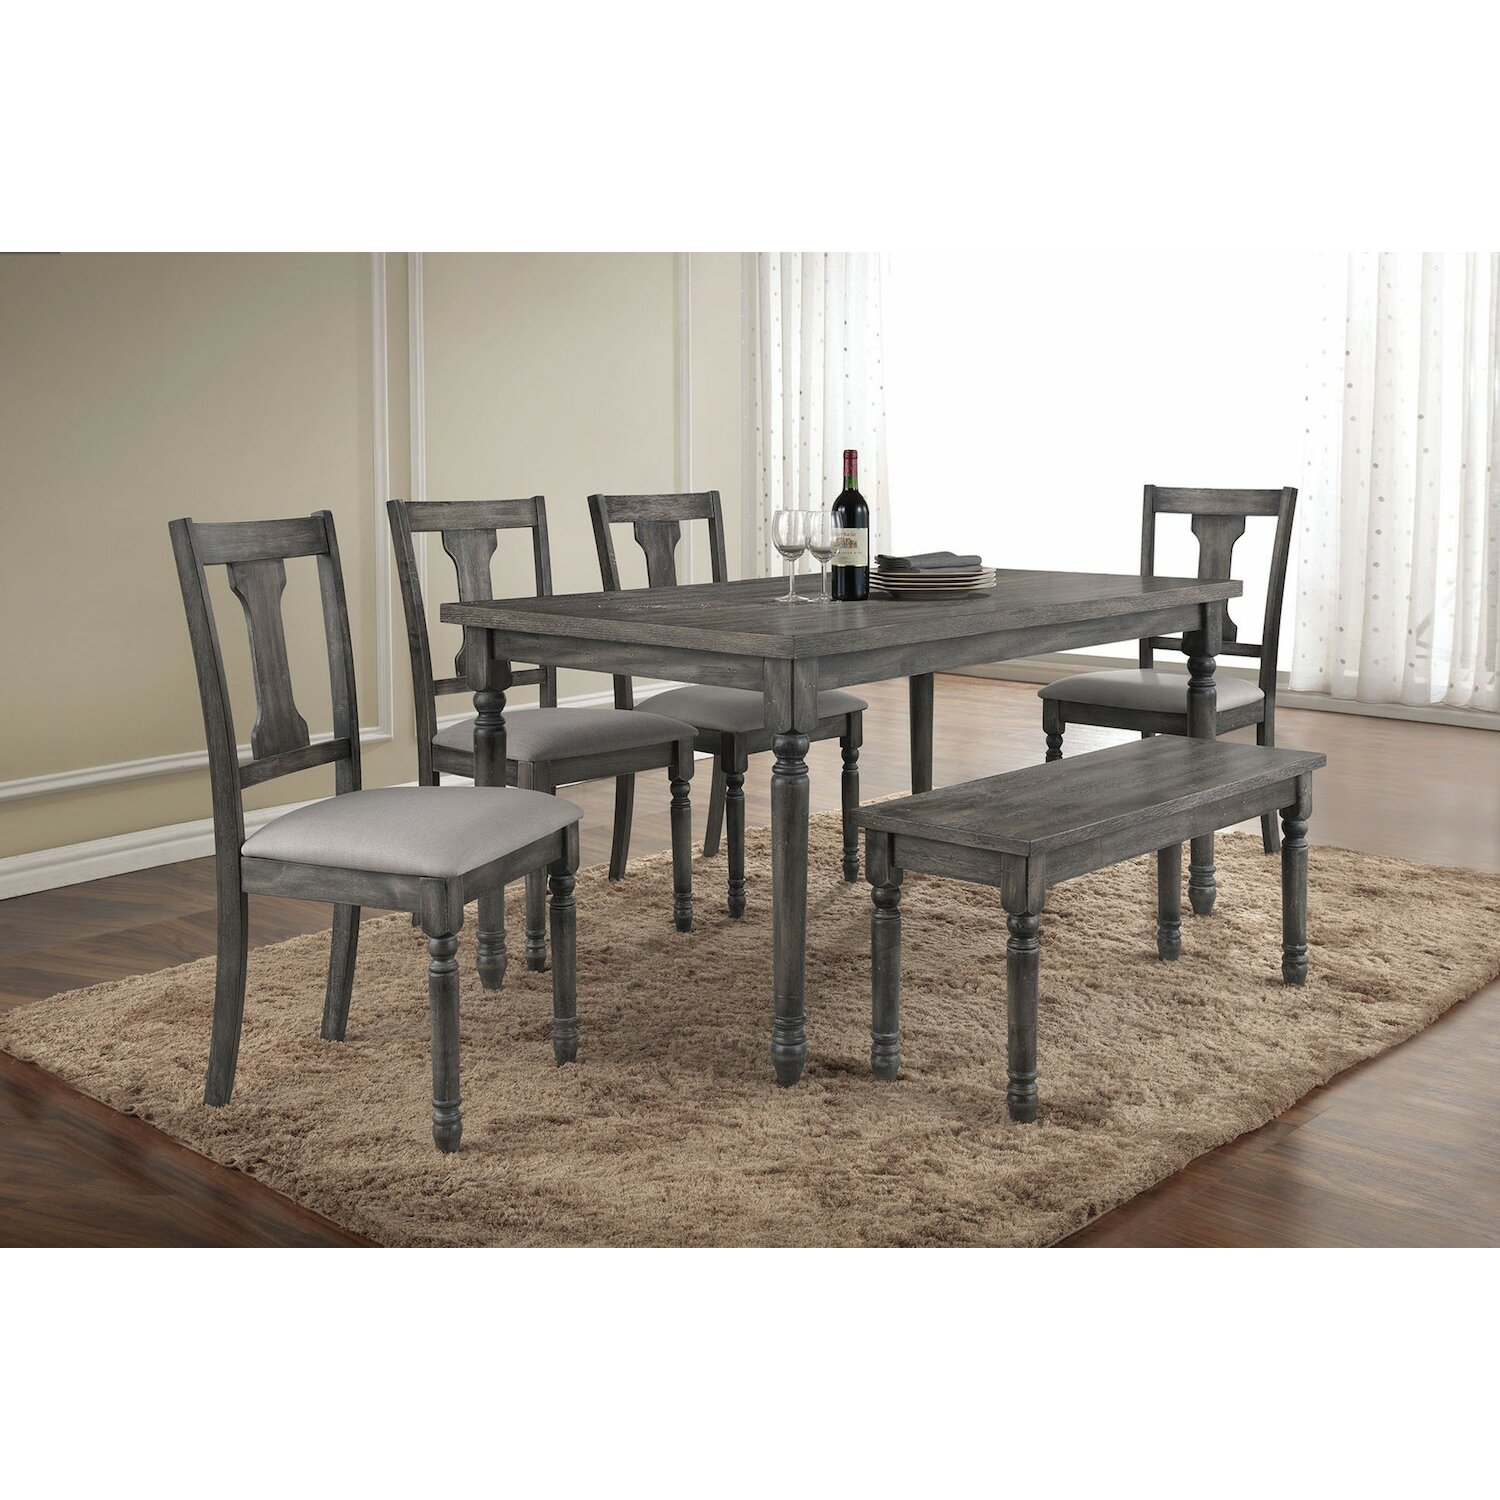 Furniture Kitchen & Dining Furniture Kitchen And Dining Sets Infini . Full resolution  img, nominally Width 1500 Height 1500 pixels, img with #5E4C41.